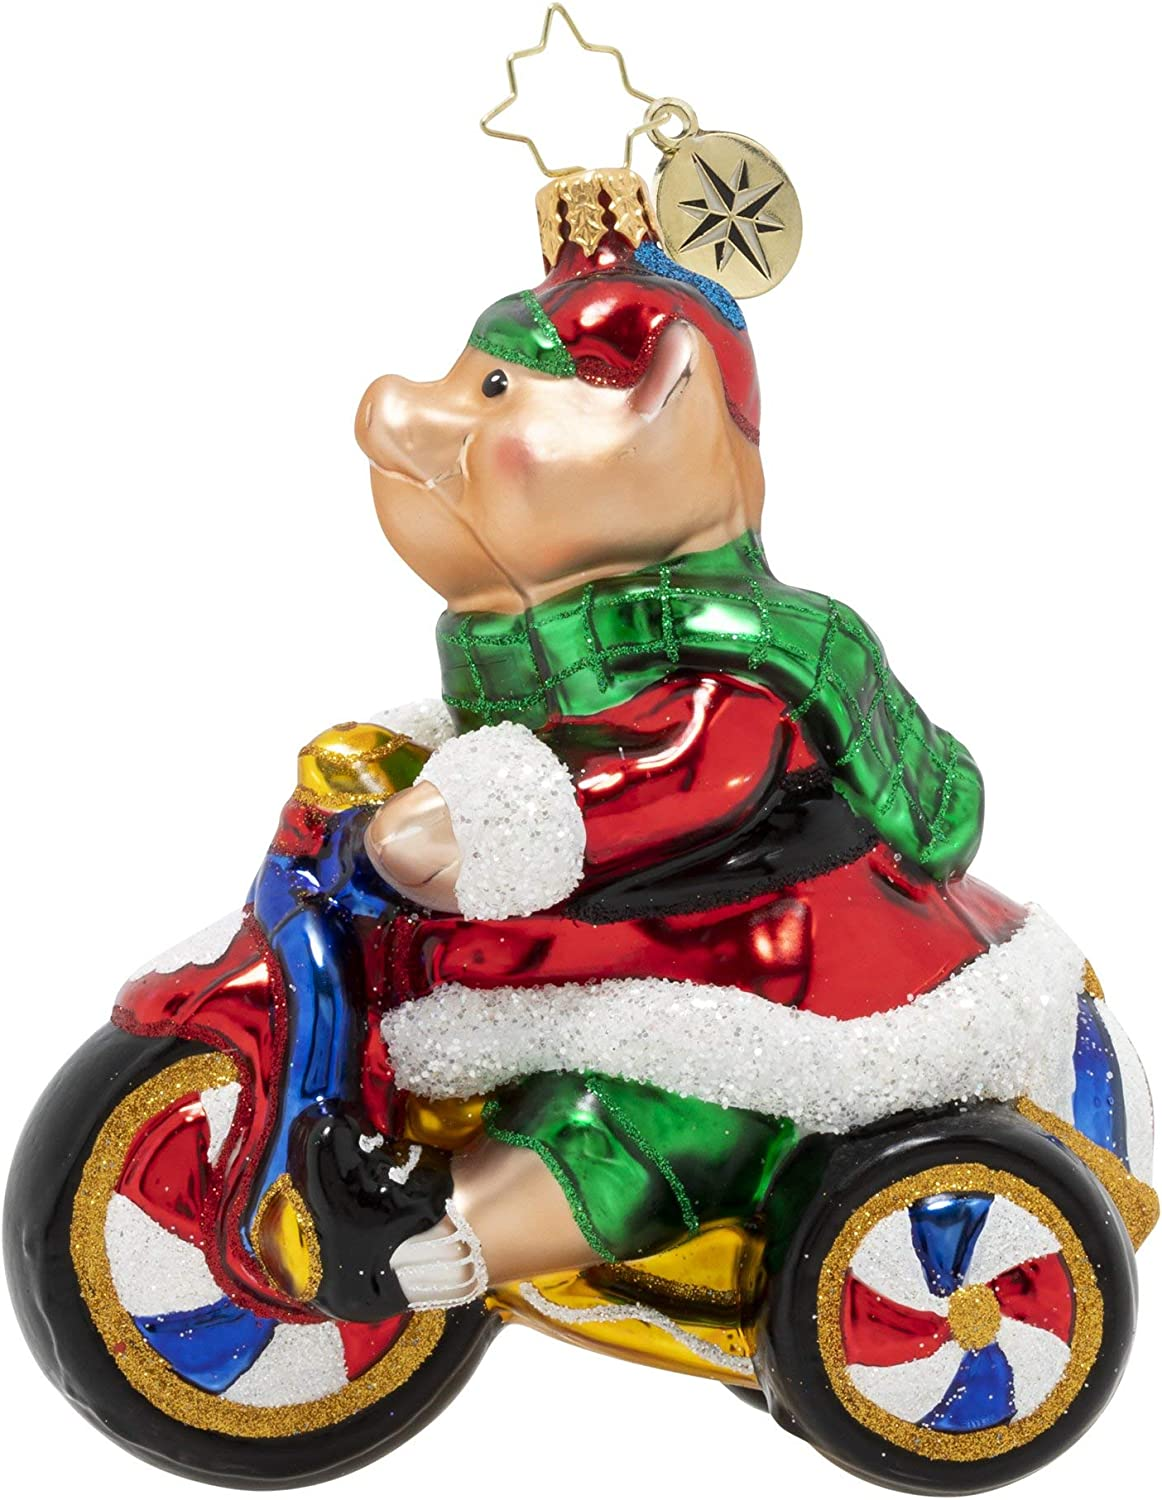 Christopher Radko Hand-Crafted European Glass Christmas Decorative Figural Ornament Dreaming of Santa!